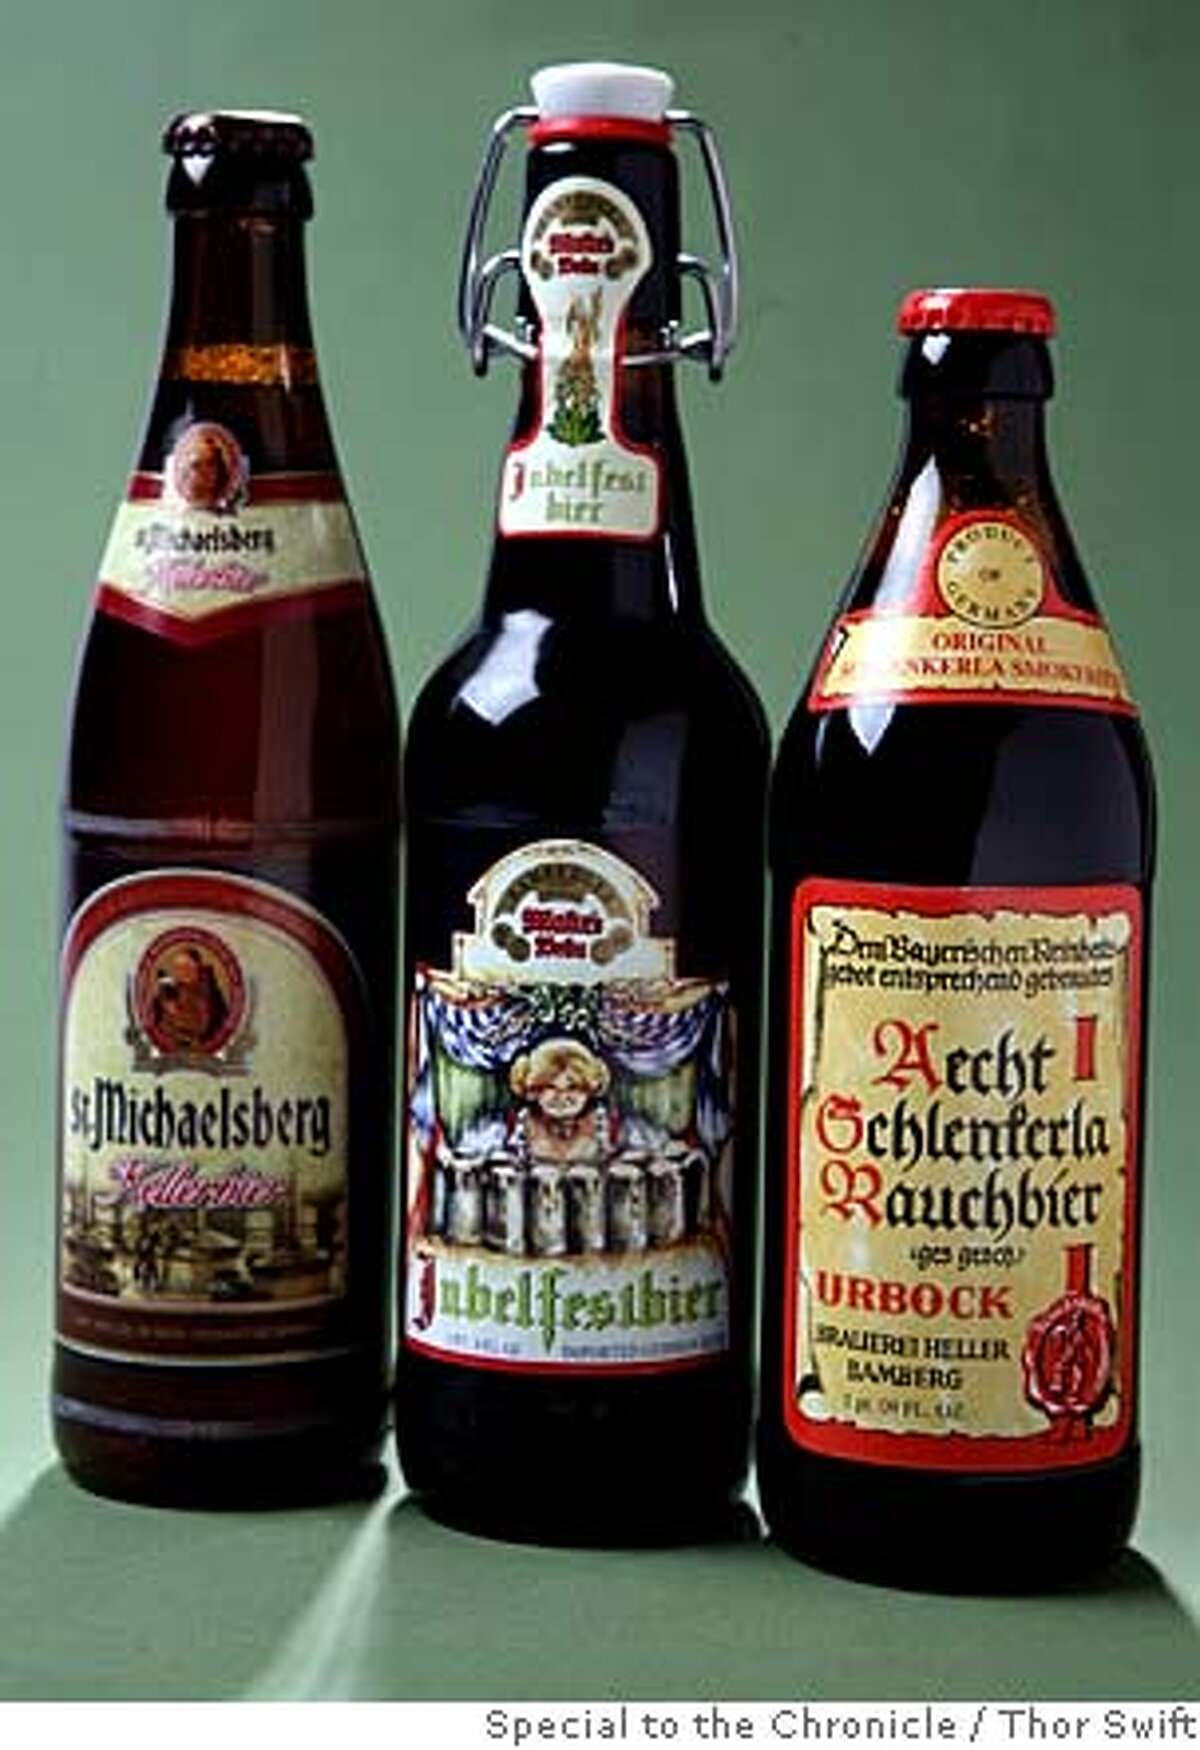 Three bottles of Franconia-style beer photographed Thursday, Jan. 3, 2008 at the San Francisco Chronicle studio. Thor Swift For The San Francisco Chronicle